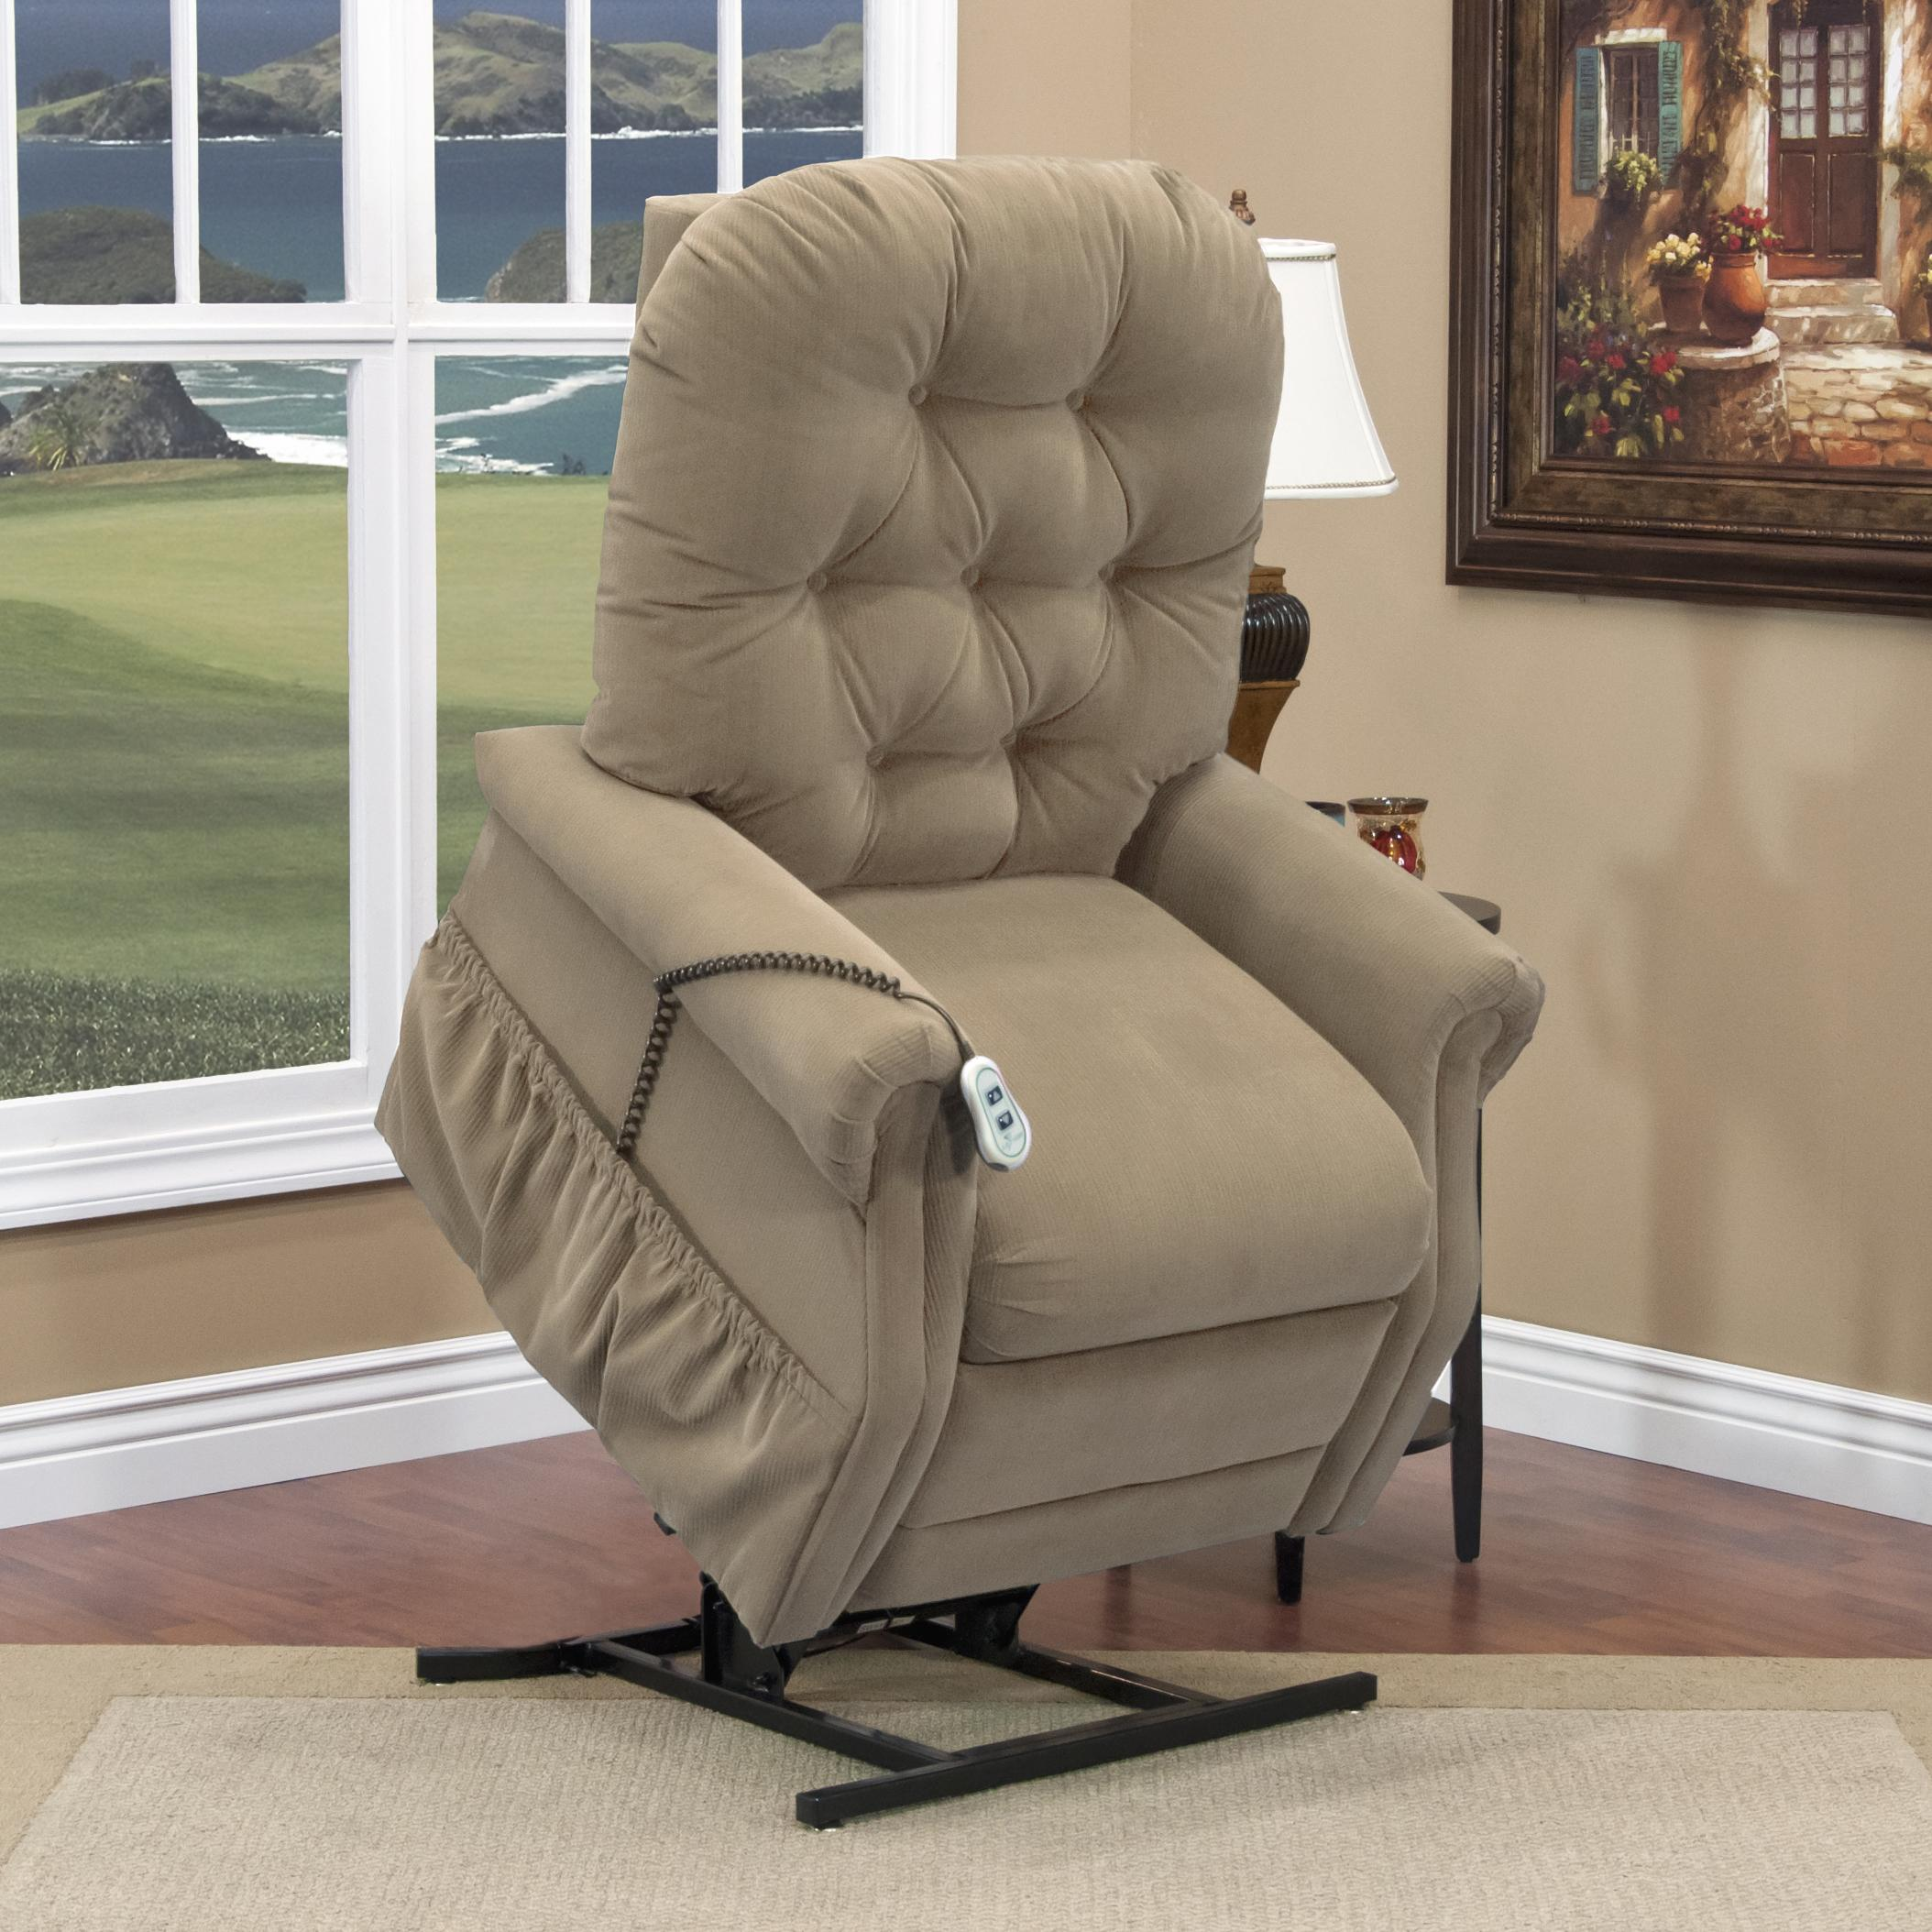 2555 Lift Recliner by Med-Lift & Mobility at Miller Home